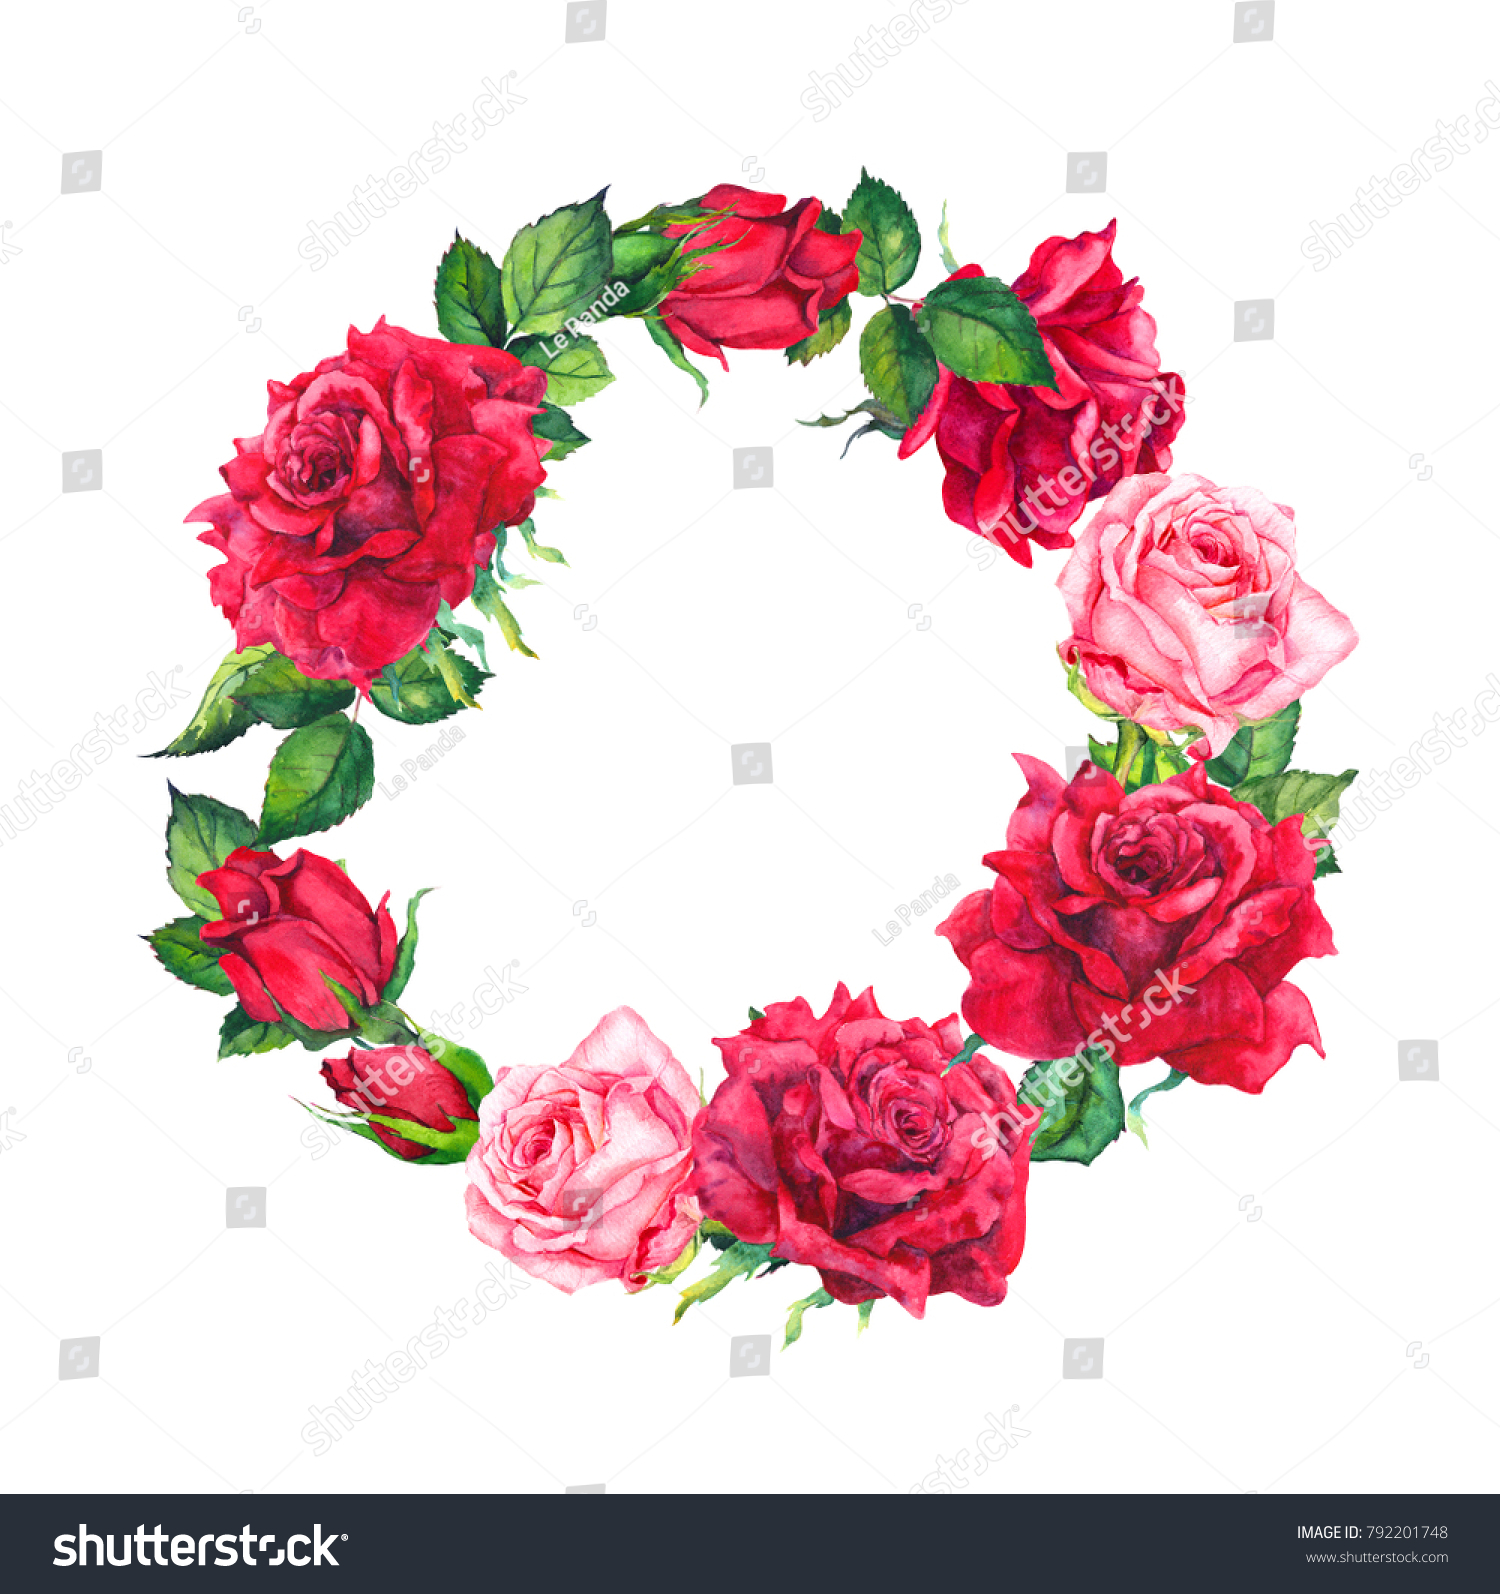 Red Pink Rose Flowers Wreath Floral Stock Illustration 792201748